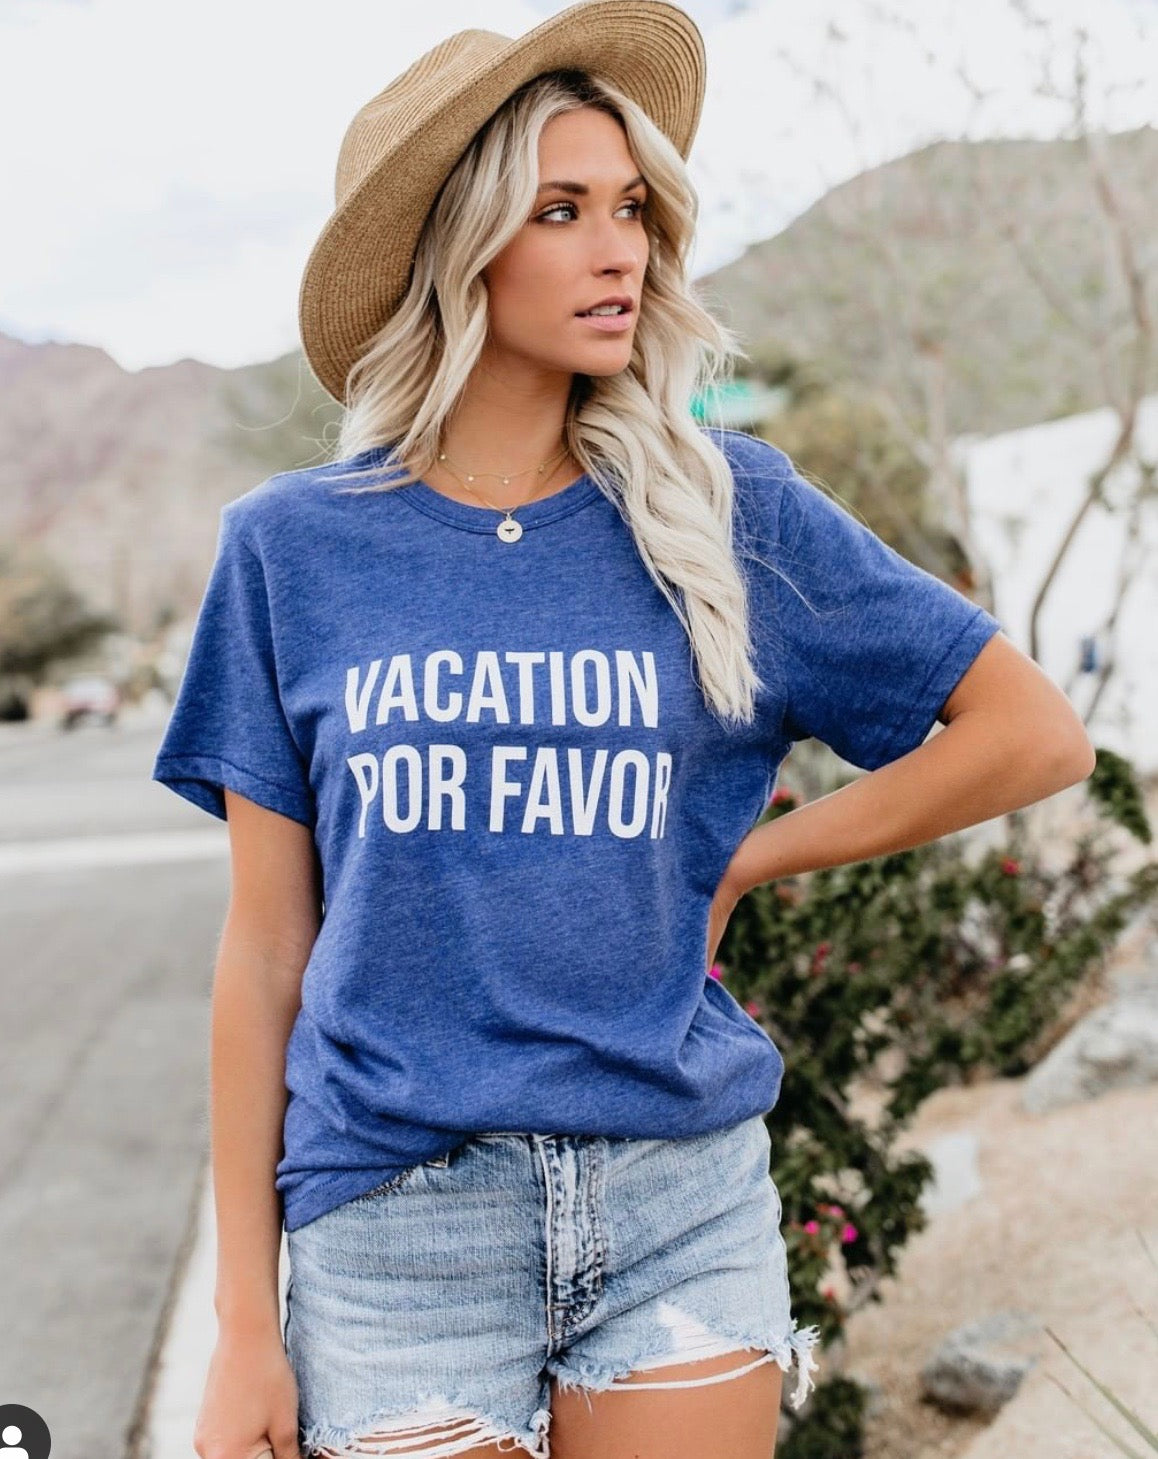 Vacation Por Favor Shirt